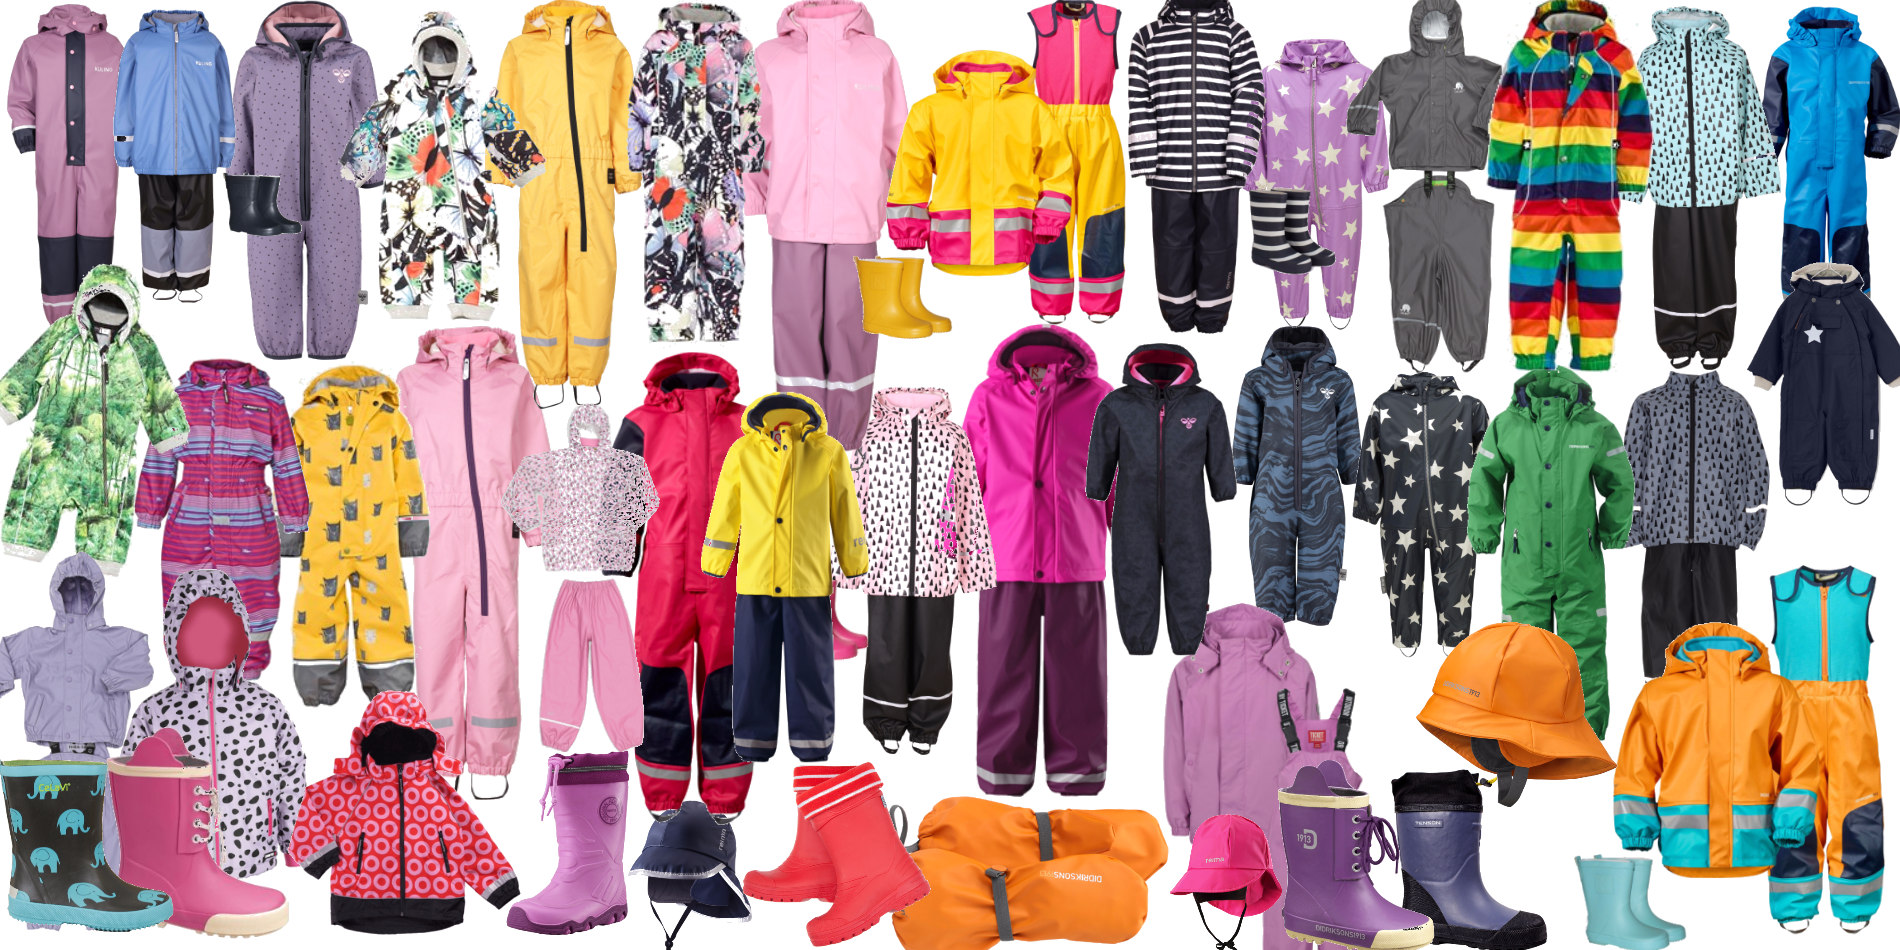 Regn & rusk - what to wear?